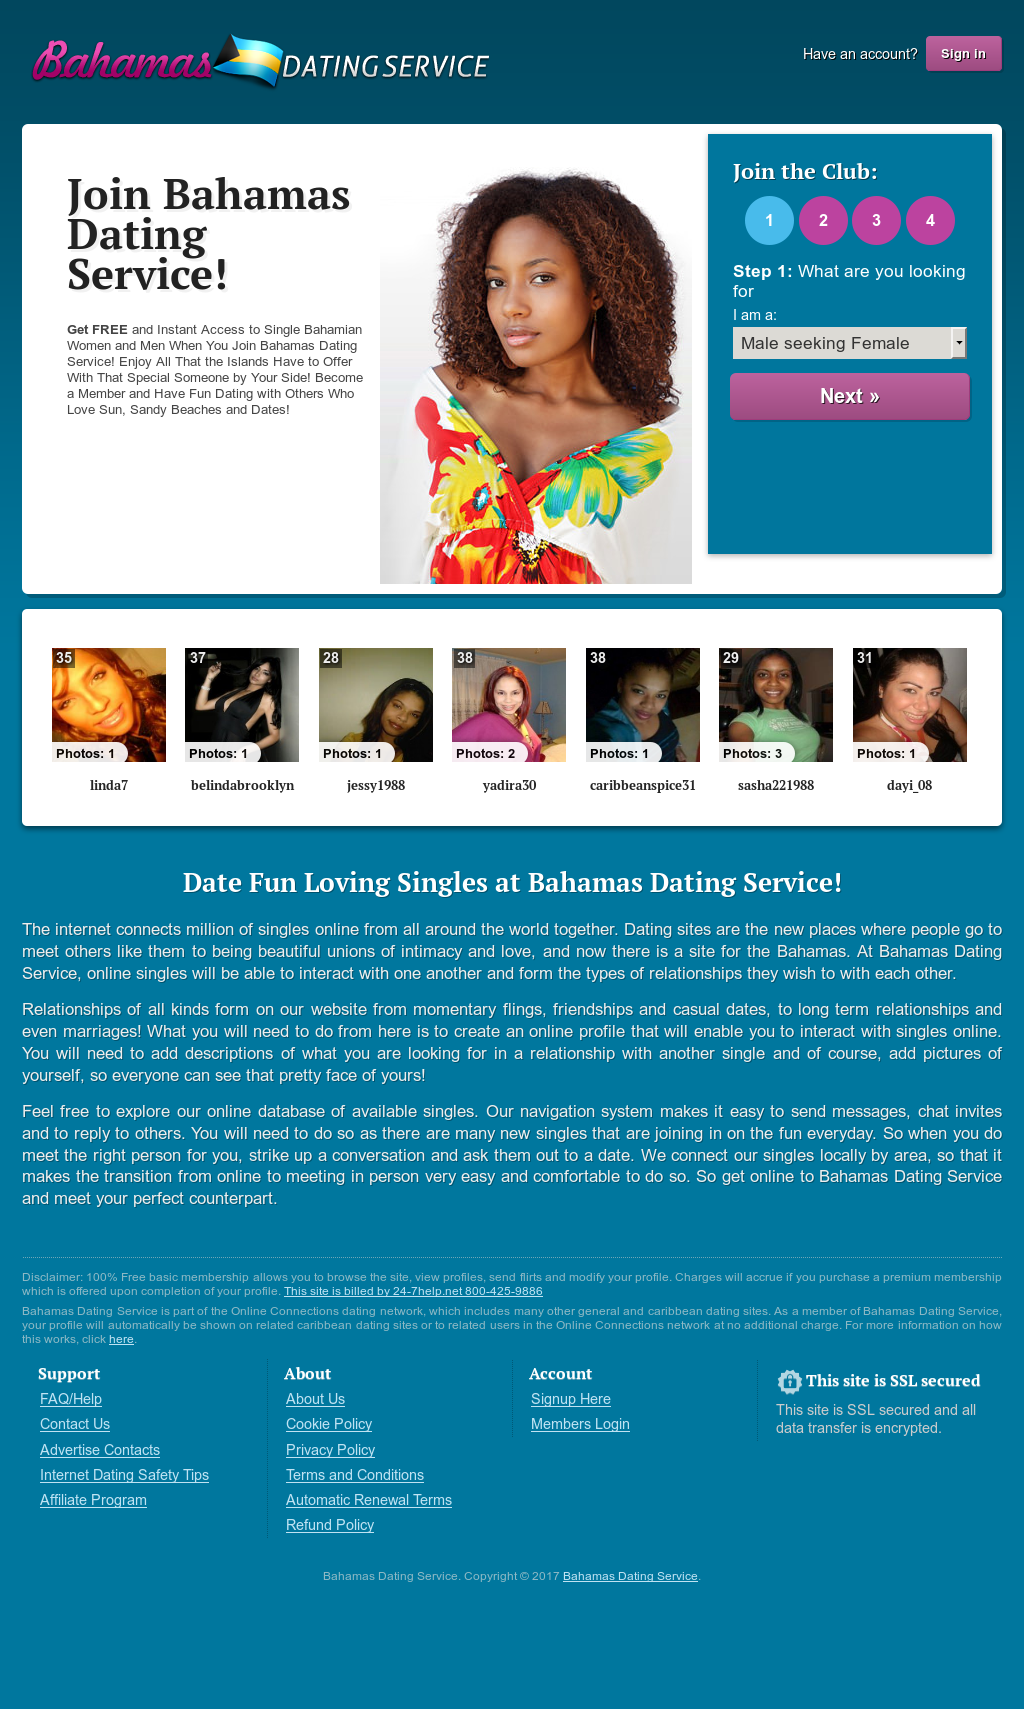 Bahamas Dating Service